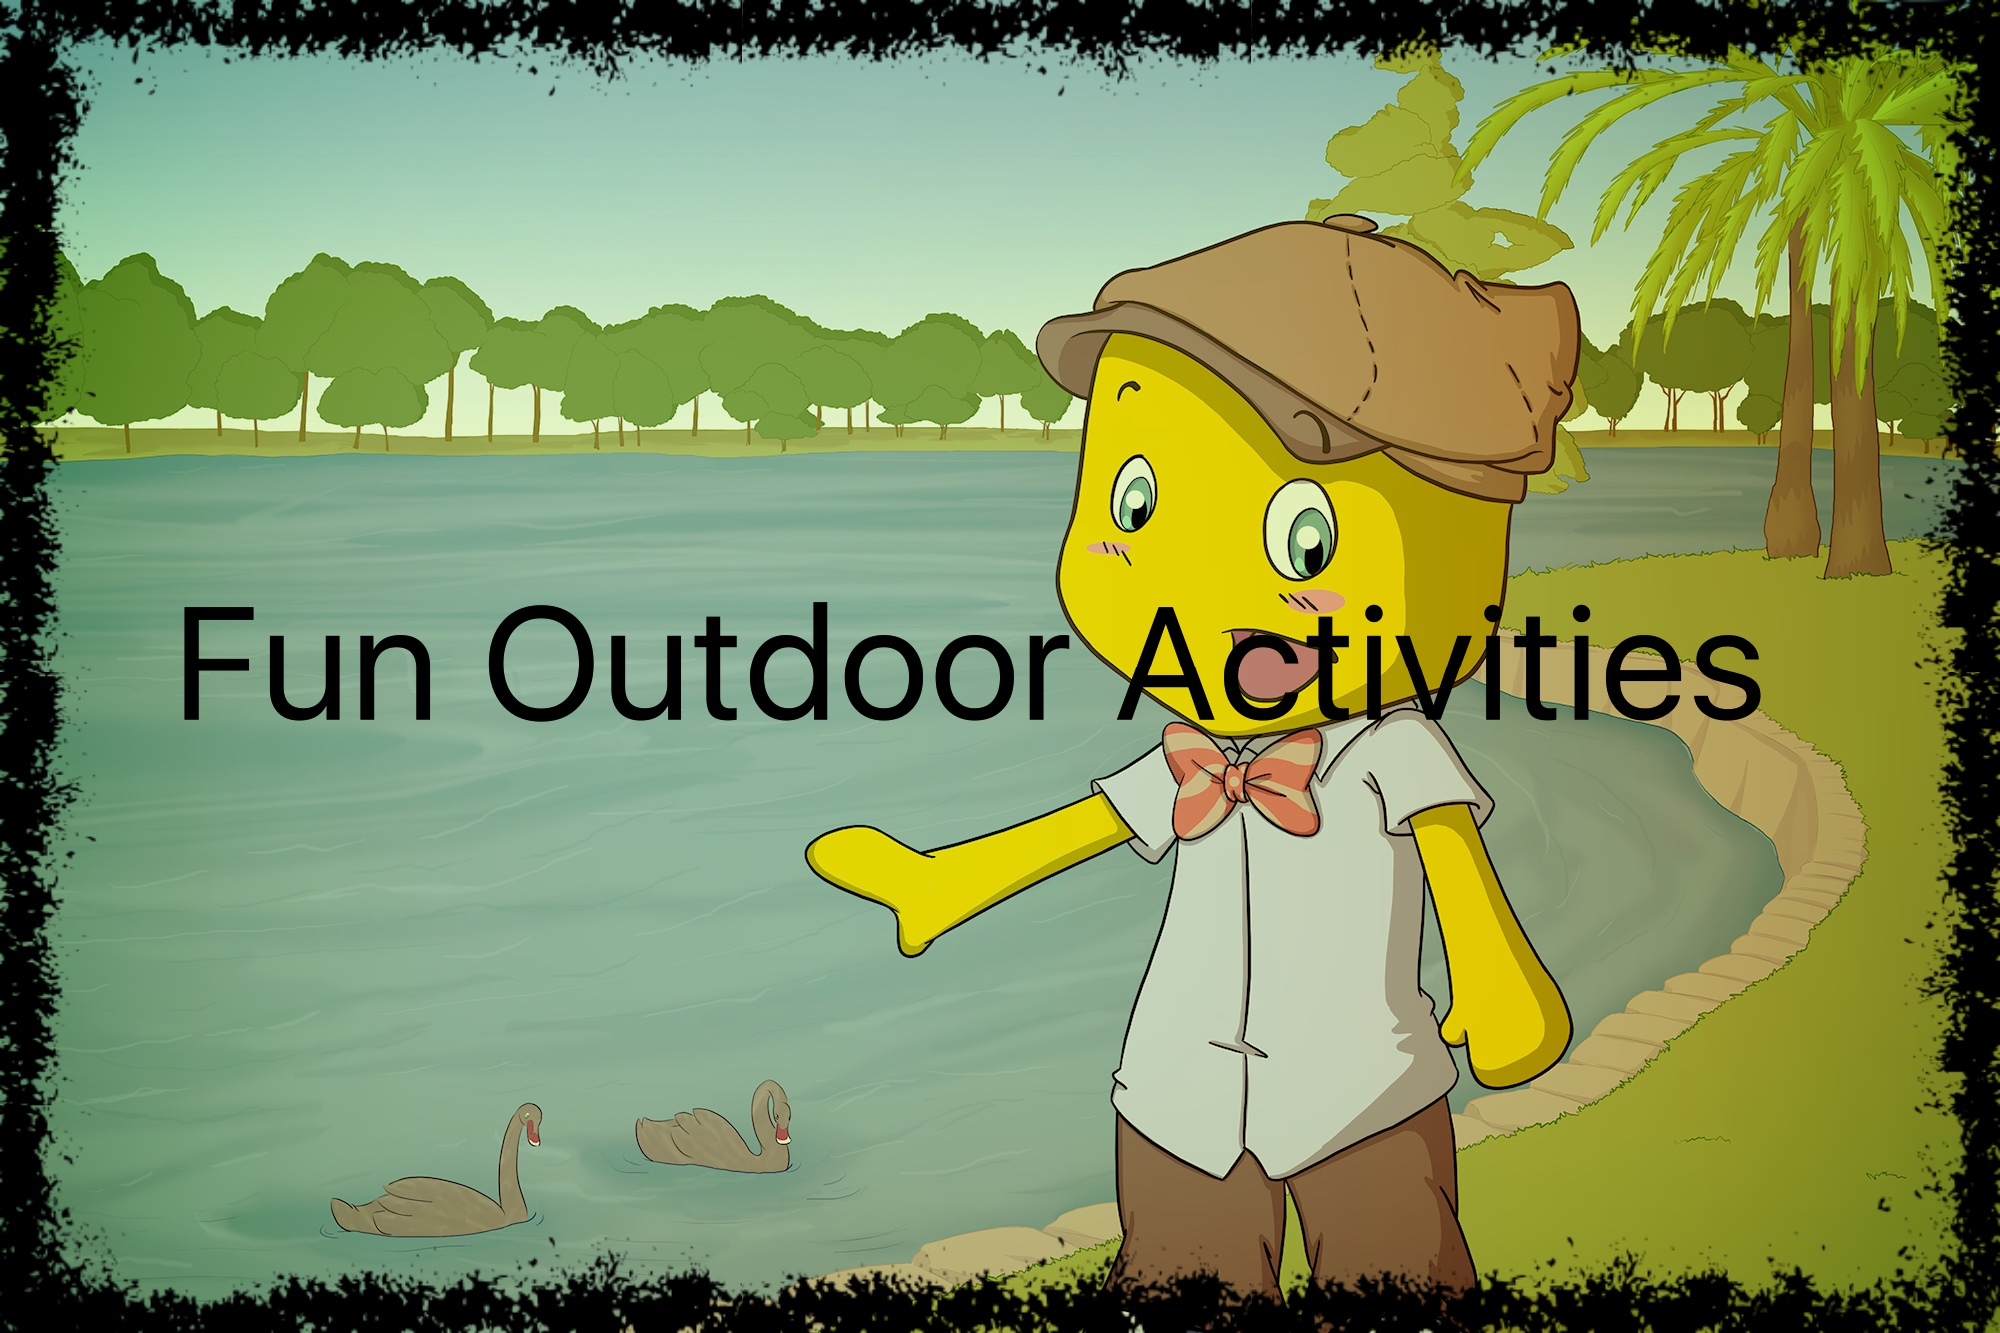 Fun Outdoor Activities